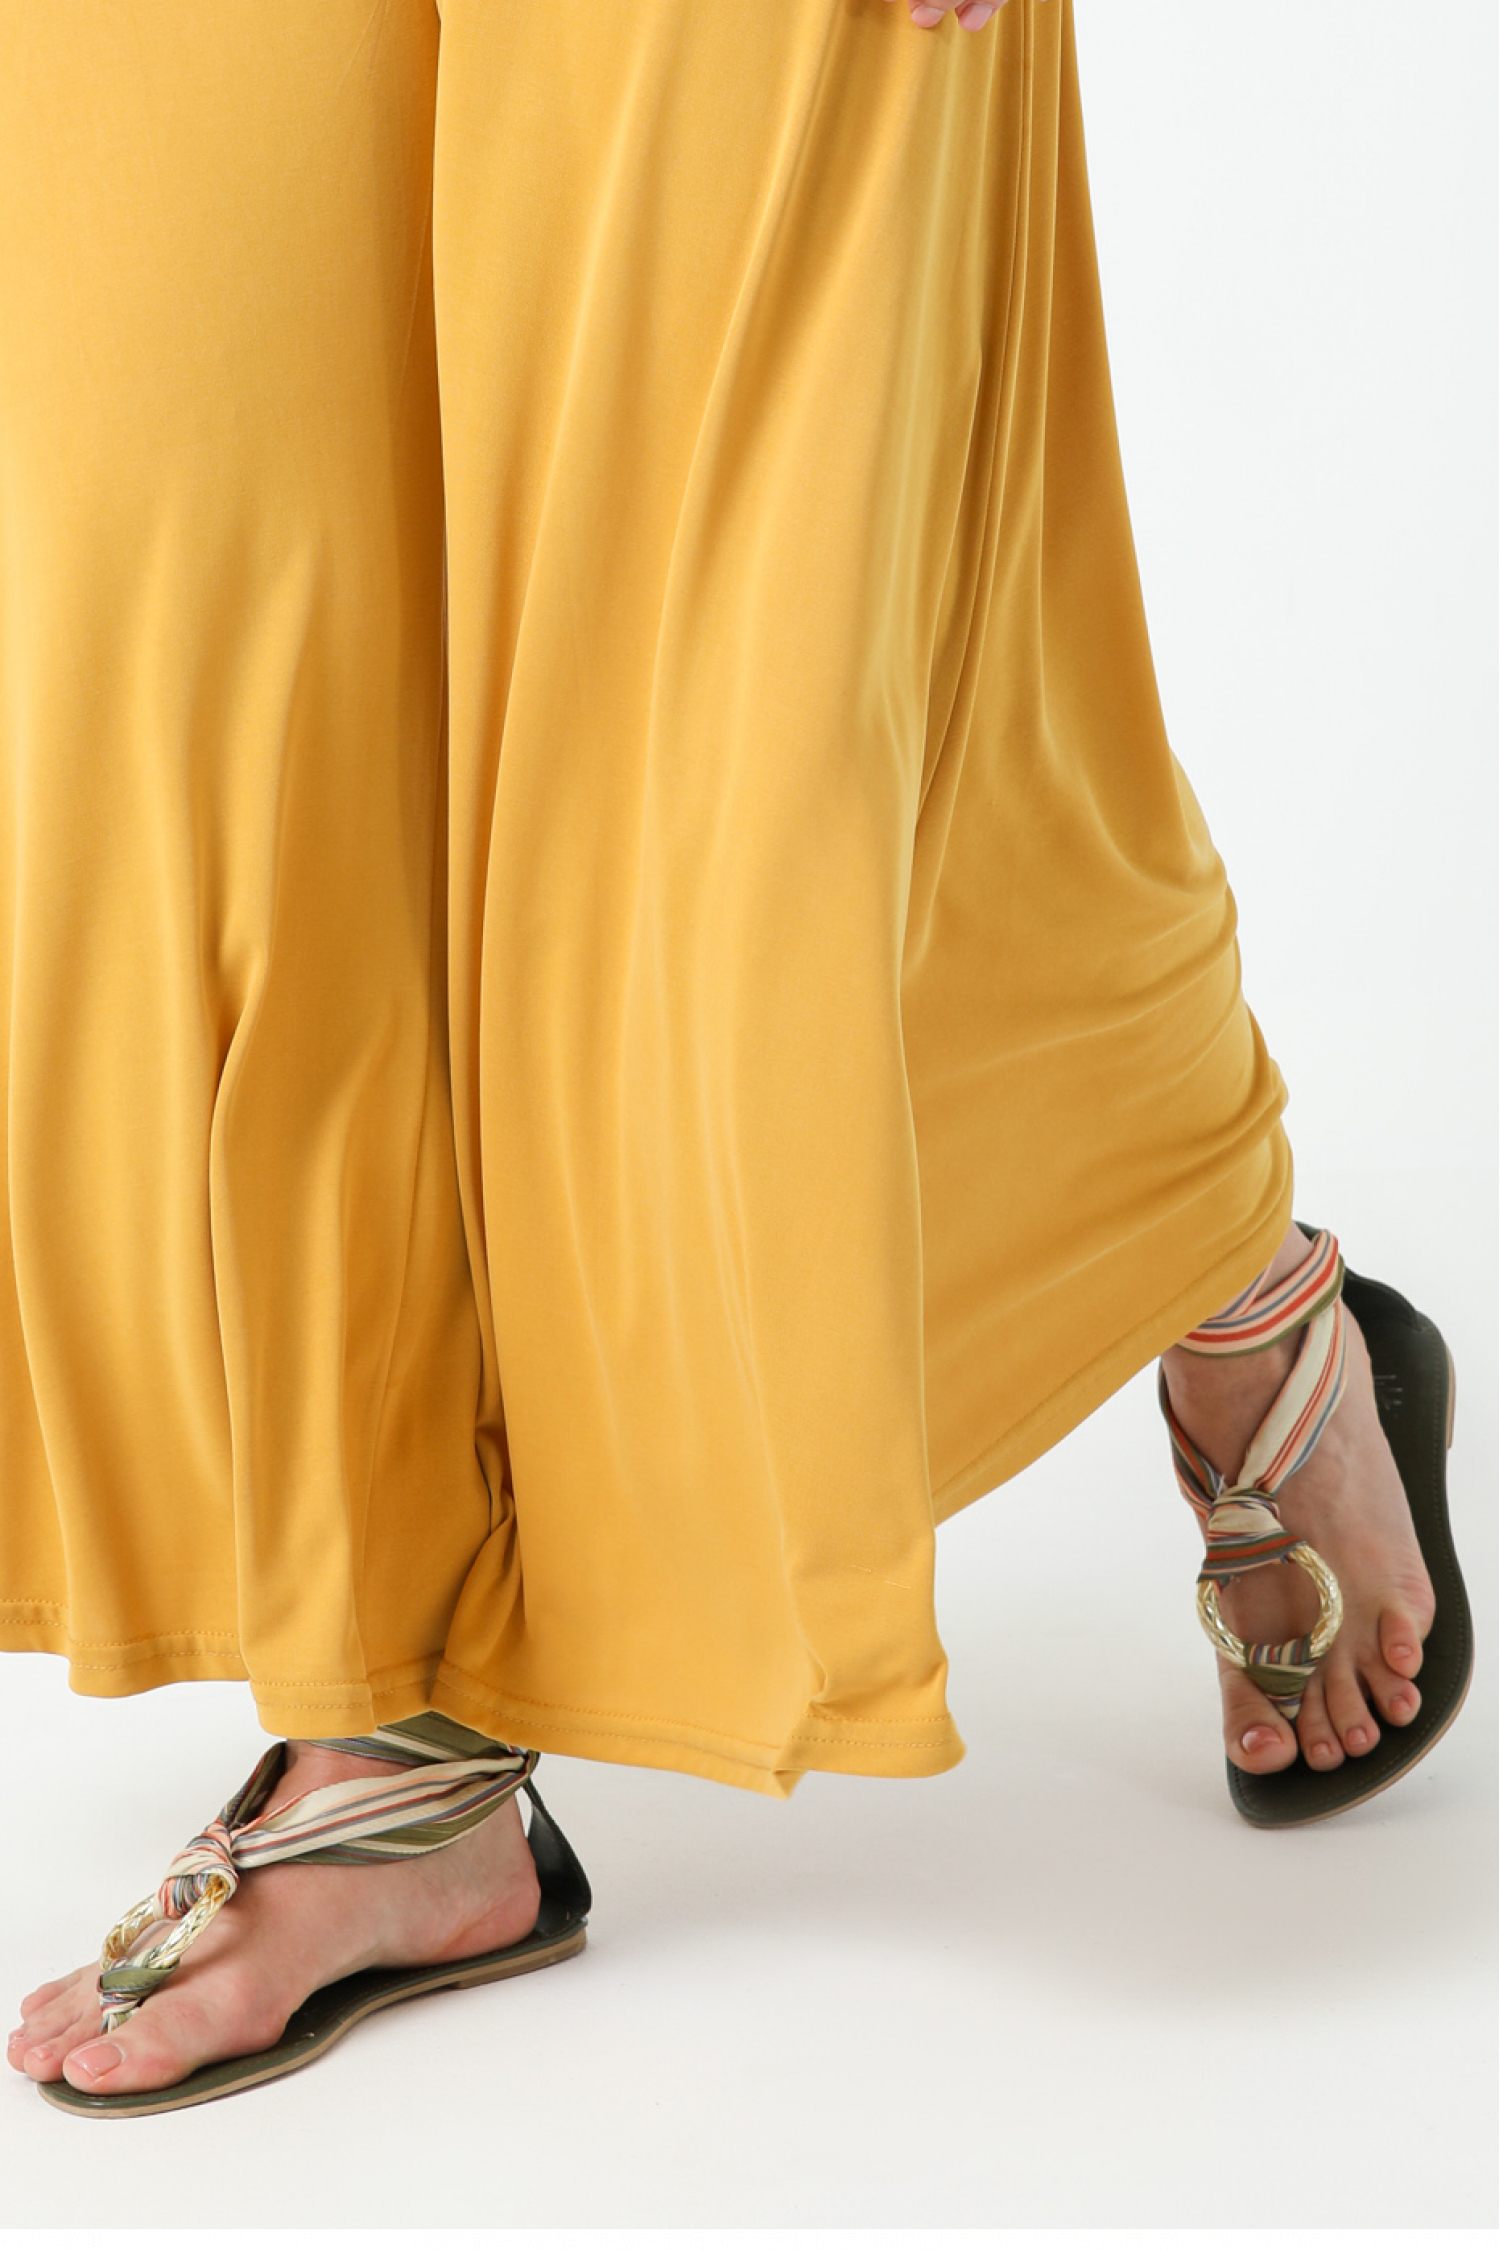 Modal culotte-style pants (delivery February 15/20)